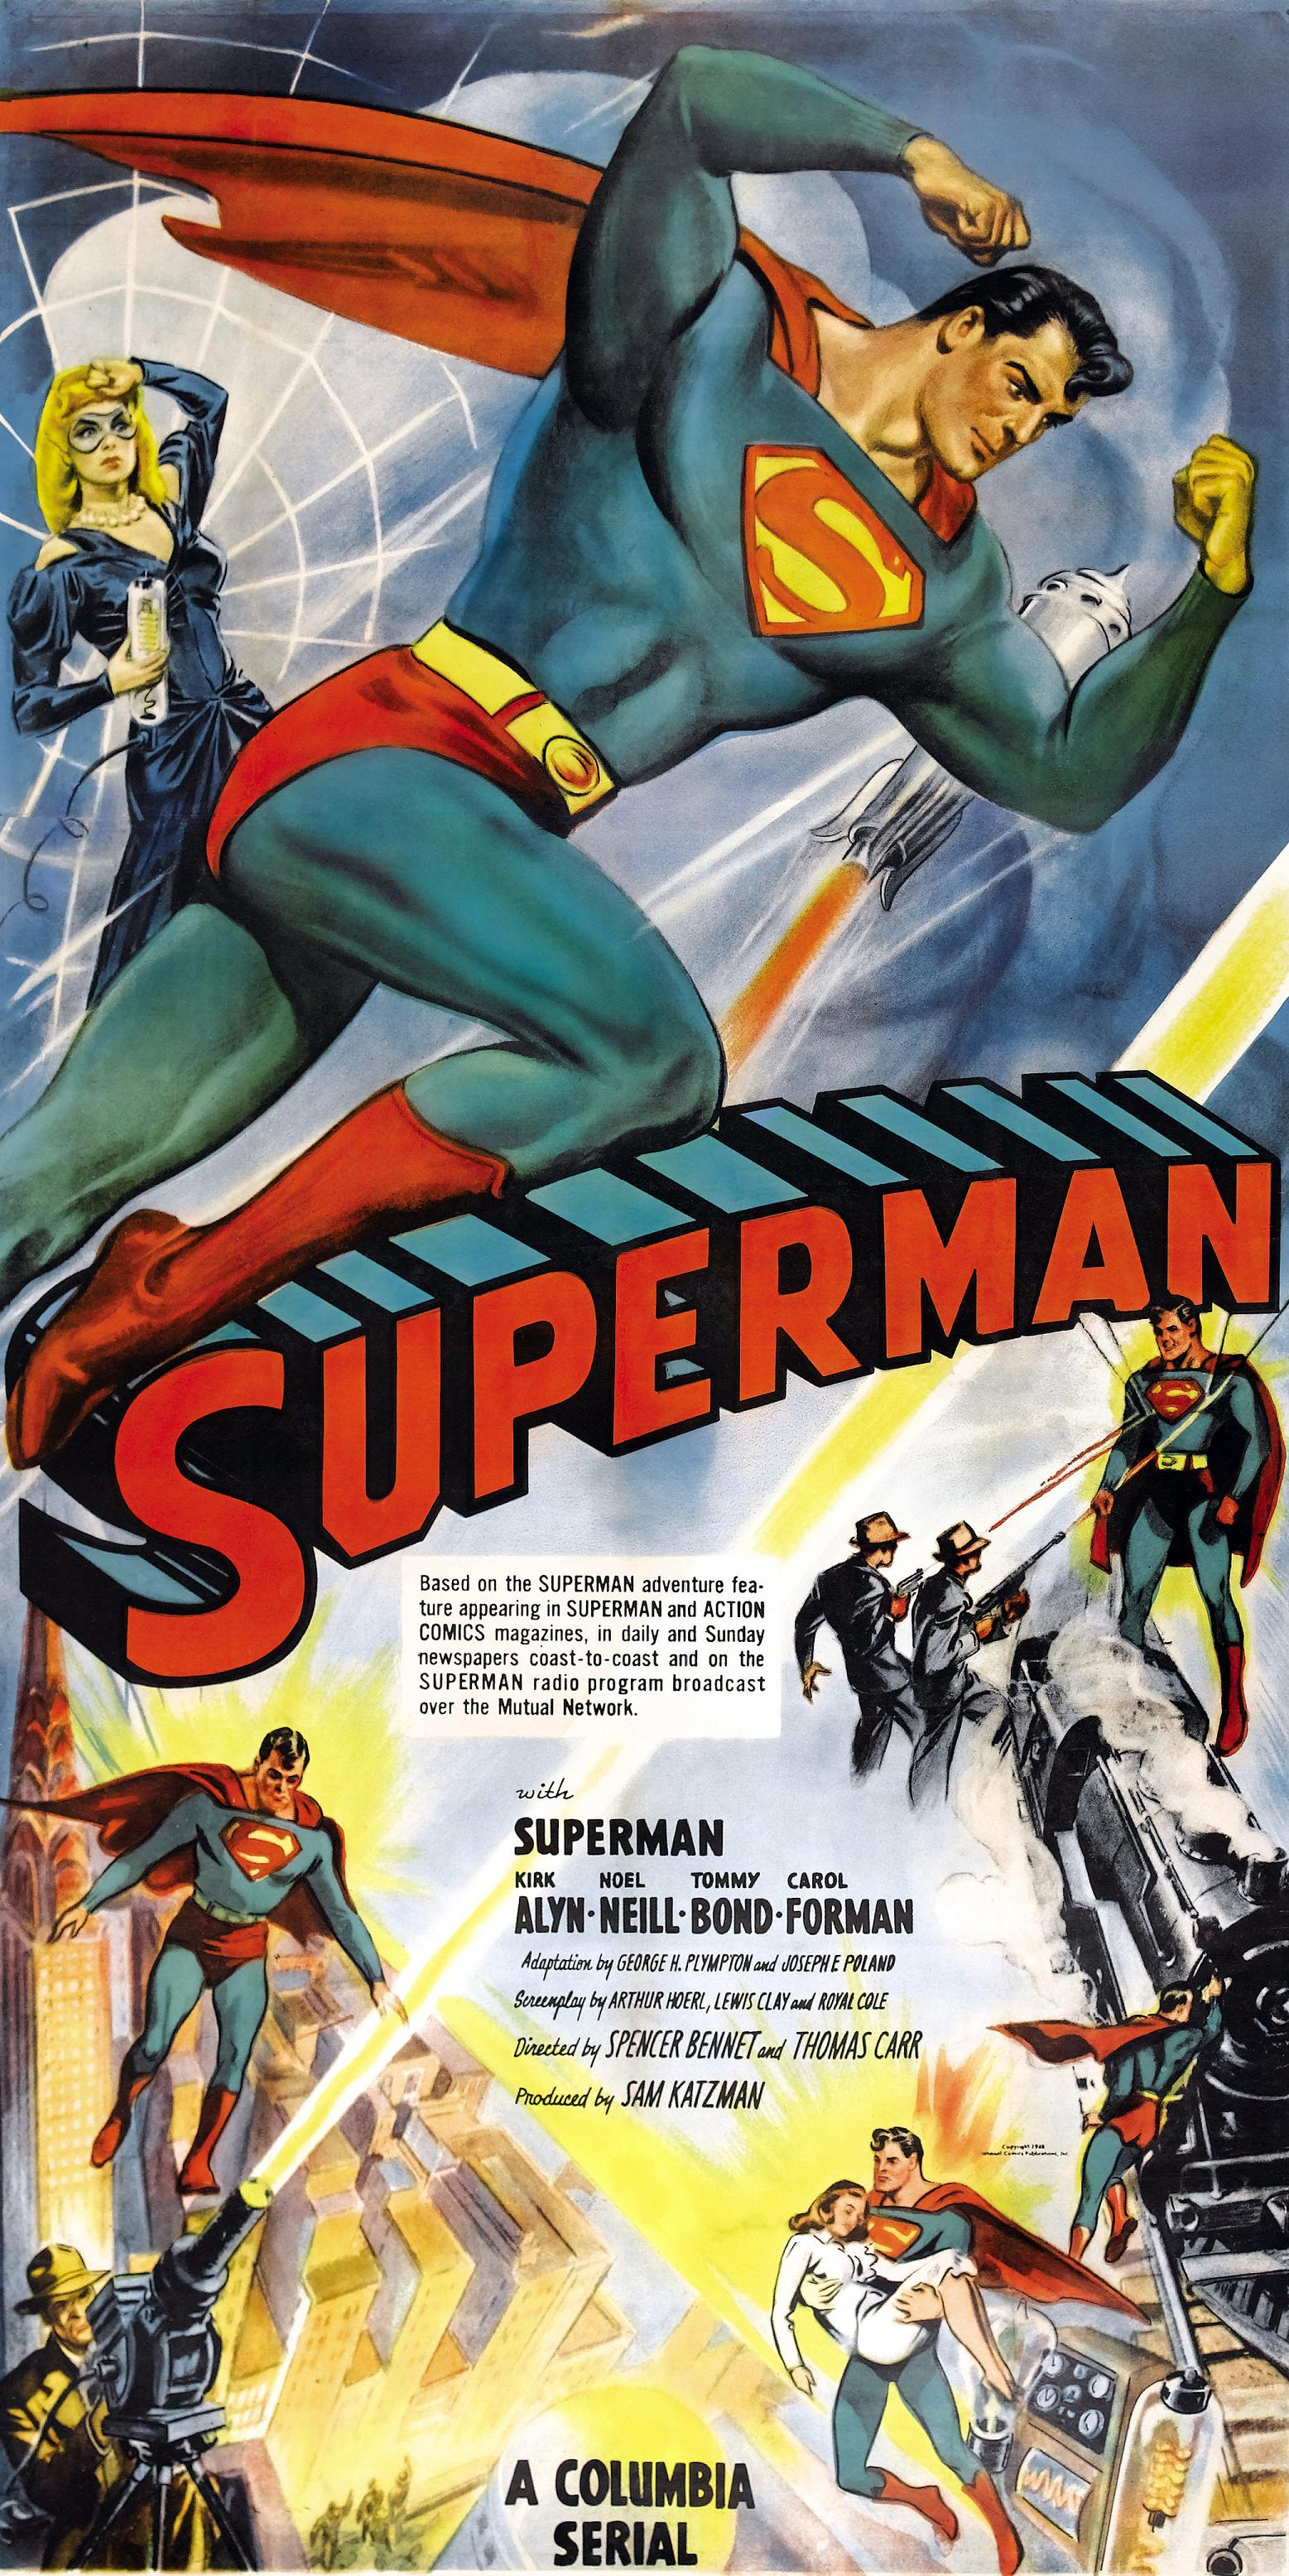 Superman soars onto the silver screen to stop the sinister Spider Lady!!! (I like alliteration)